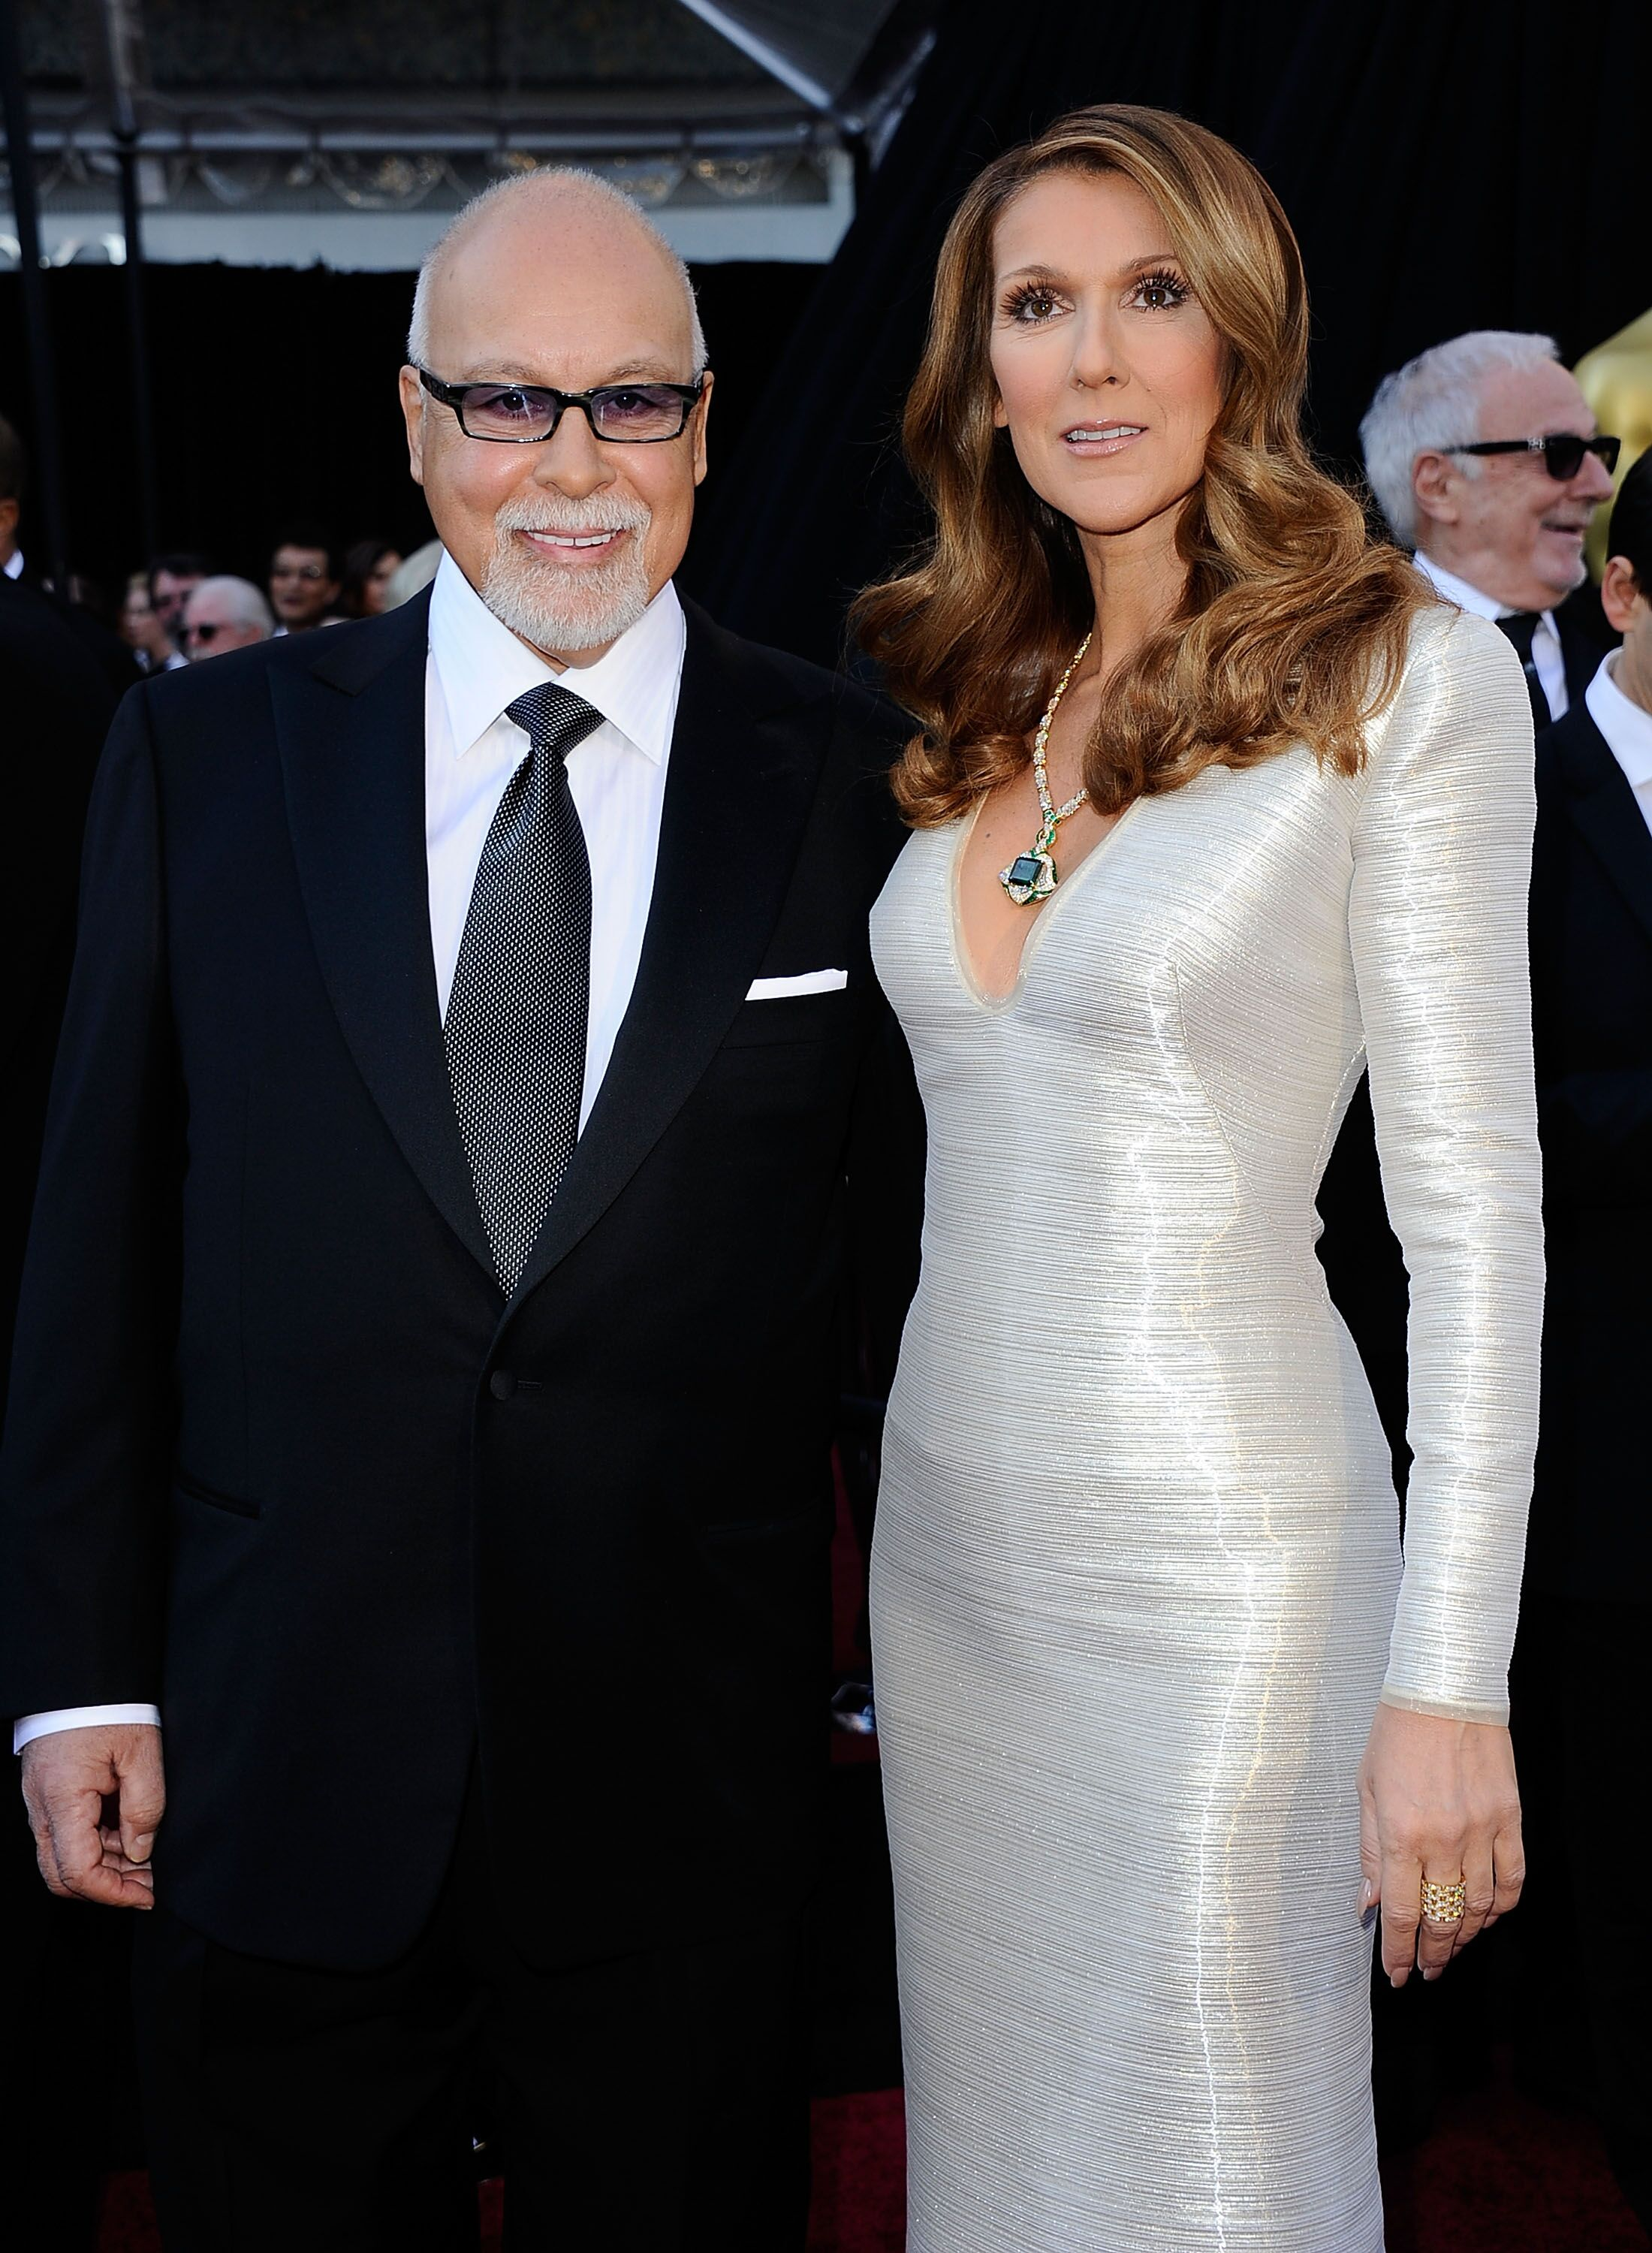 Rene Angelil and Celine Dion at the 83rd Annual Academy Awards in 2011 in Hollywood | Source: Getty Images